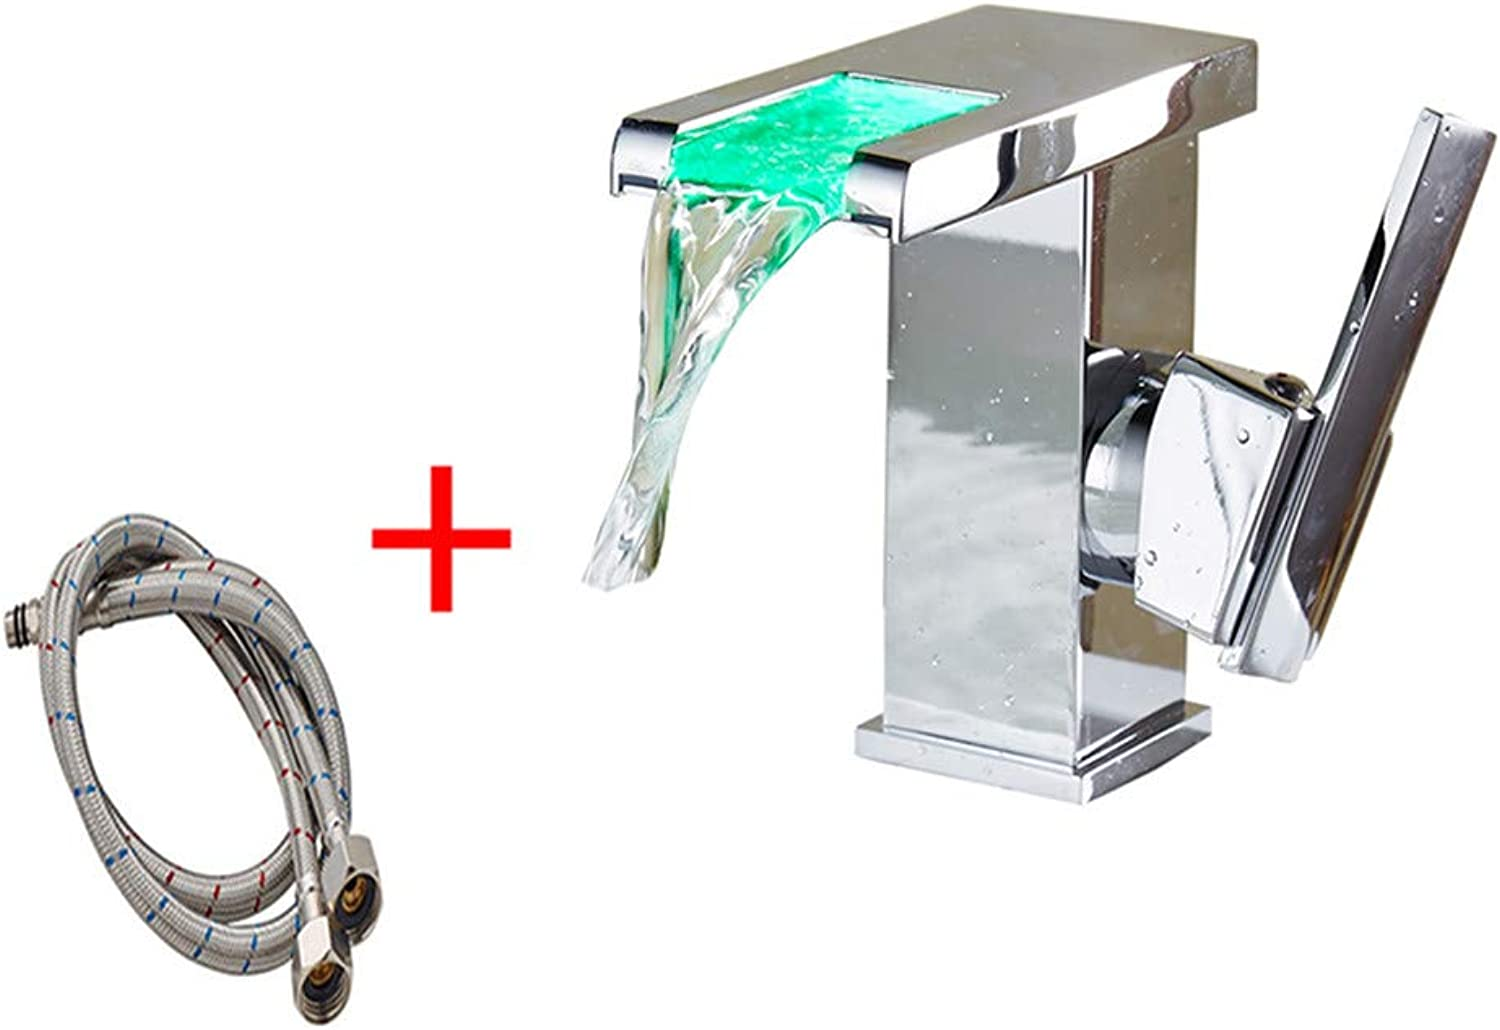 Good quality Water faucet basin mixer waterfall single hole basin faucet Hot and Cold washing your face hand basin toilet bathroom personality creative faucet +60 Hose